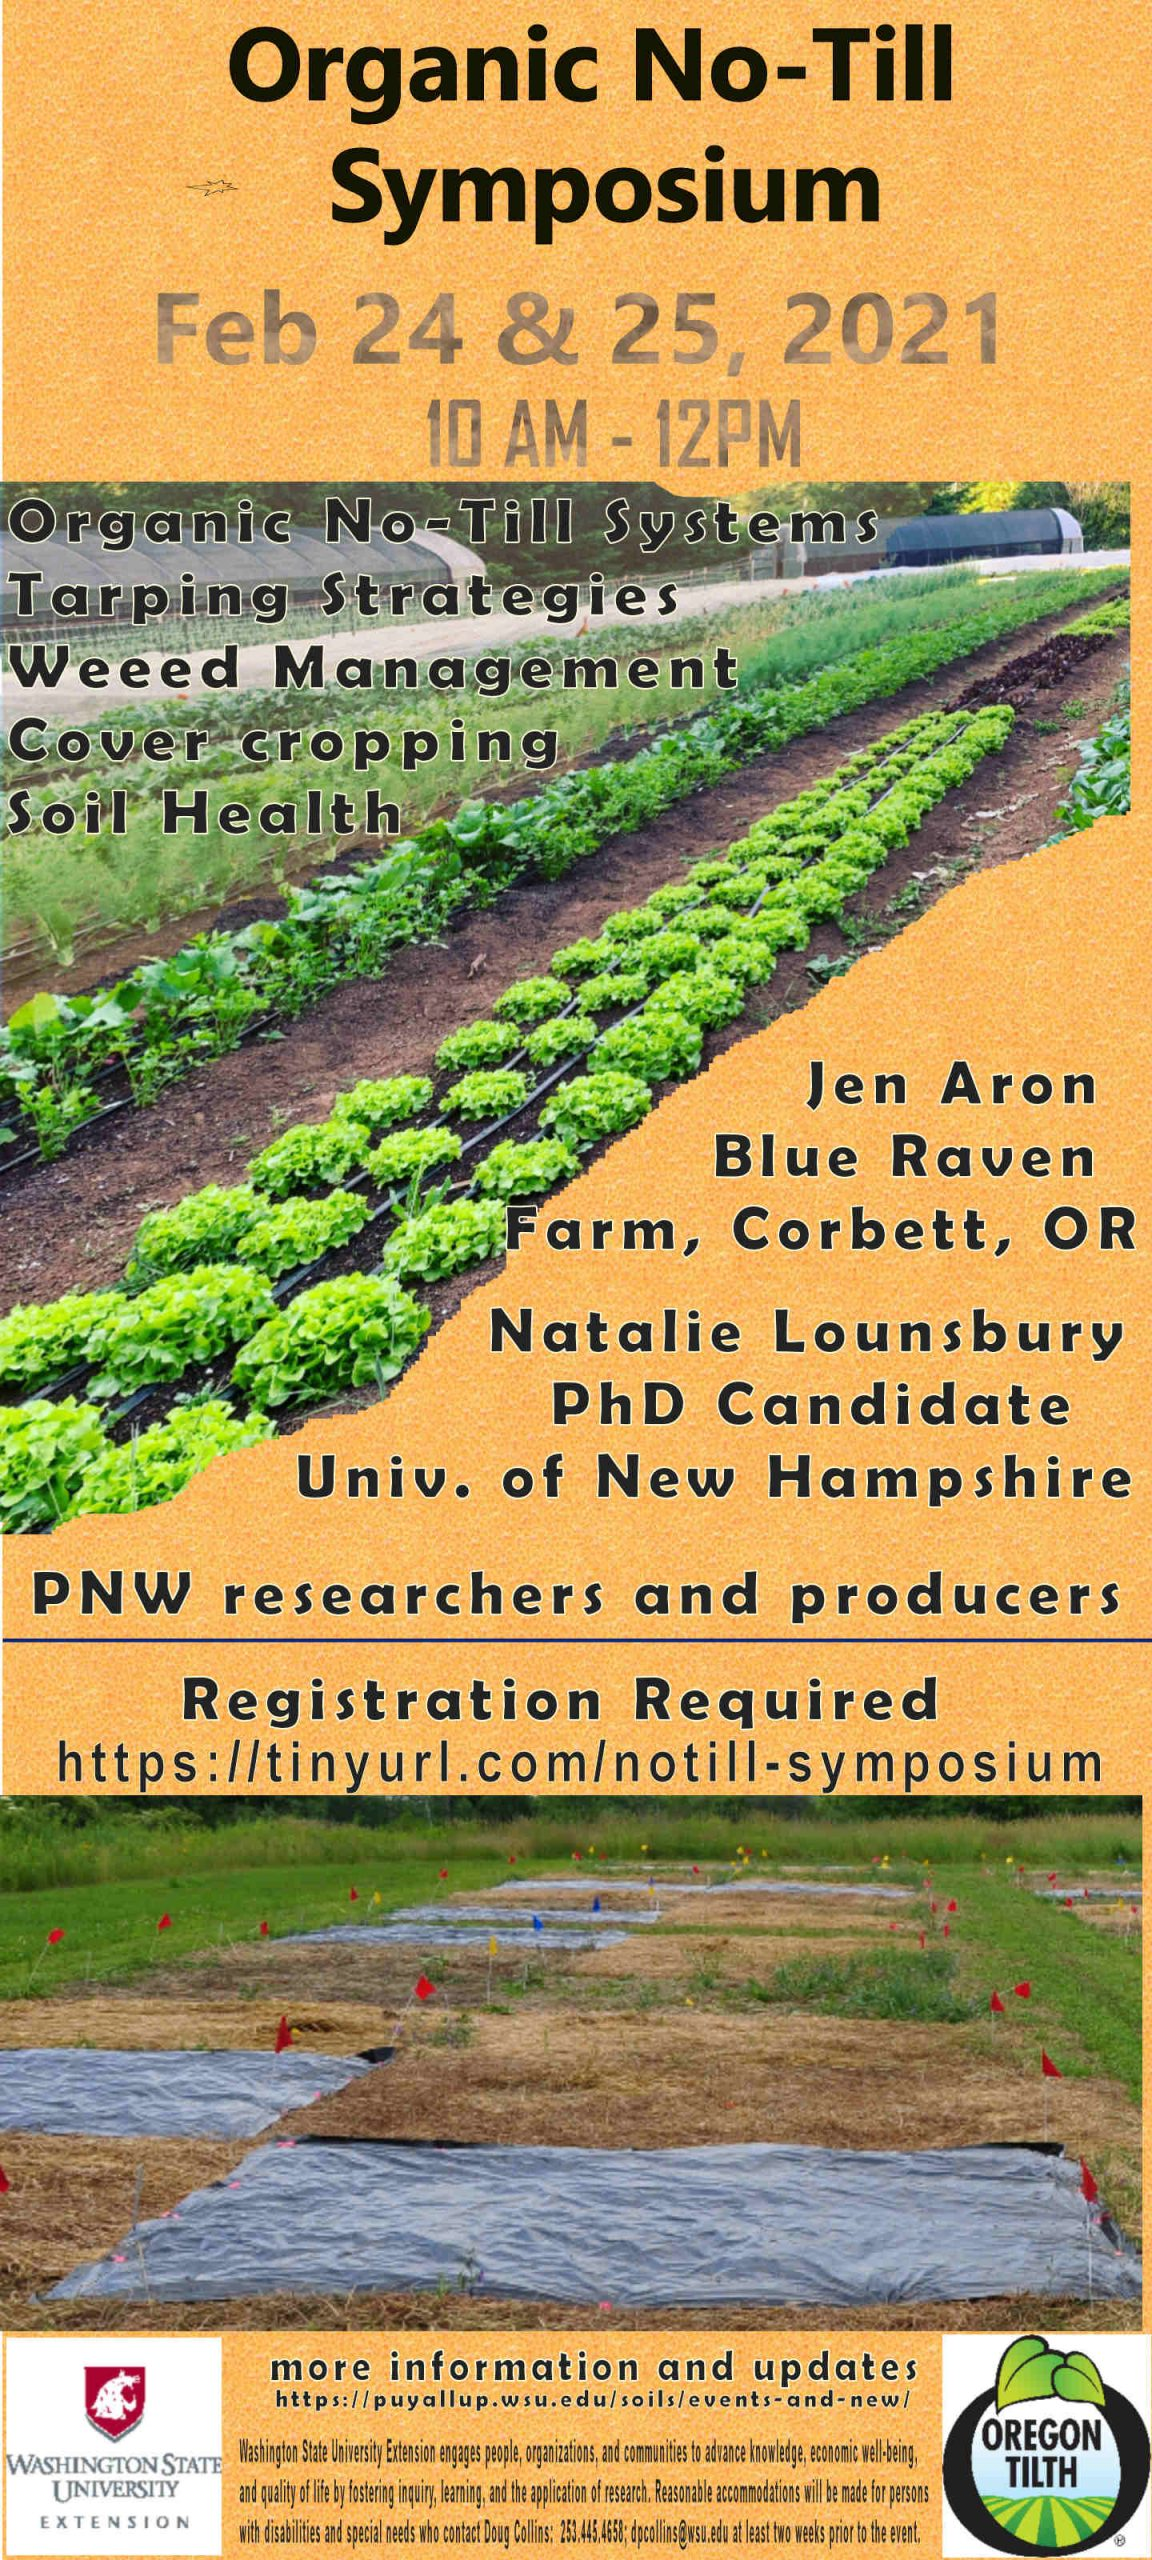 Organic No-Till Symposium. February 24 & 25, 2021. 10:00 am - 12:00 pm. Featuring: organic no-till systems; tarping strategies; weed management; cover cropping; and soil health. Presenters include: Jen Aron (Blue Raven Farm, Corbett, OR), Natalie Lounsbury (Ph.D. Candidate, University of New Hampshire), and PNW researchers and producers. Registration is required.